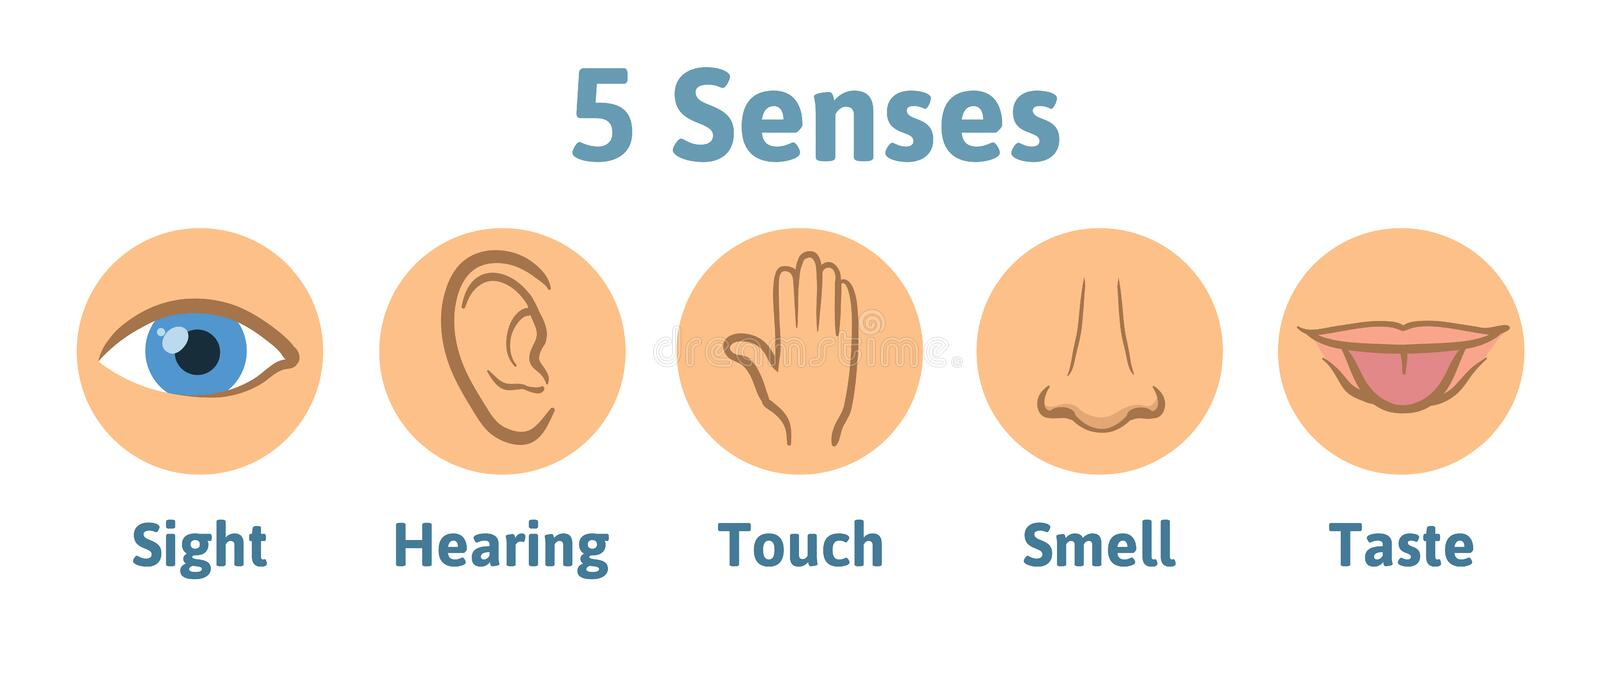 Set of five human senses icon: vision, hearing, smell, hearing, touch, taste. Eye, ear, hand, nose and mouth with tongue royalty free illustration